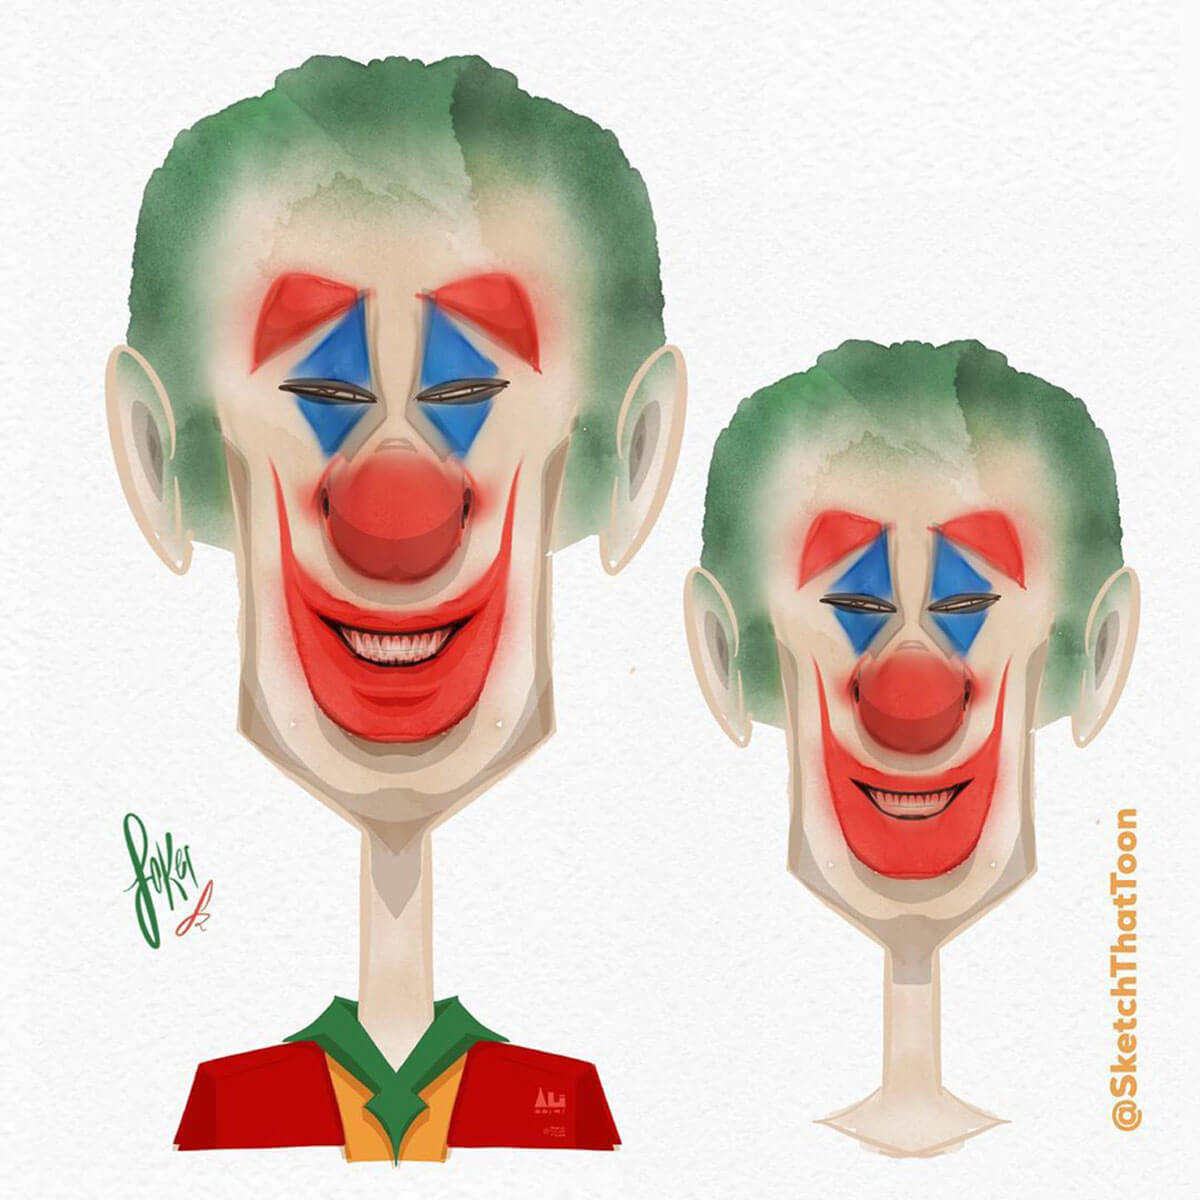 The Joker by Sketchthattoon